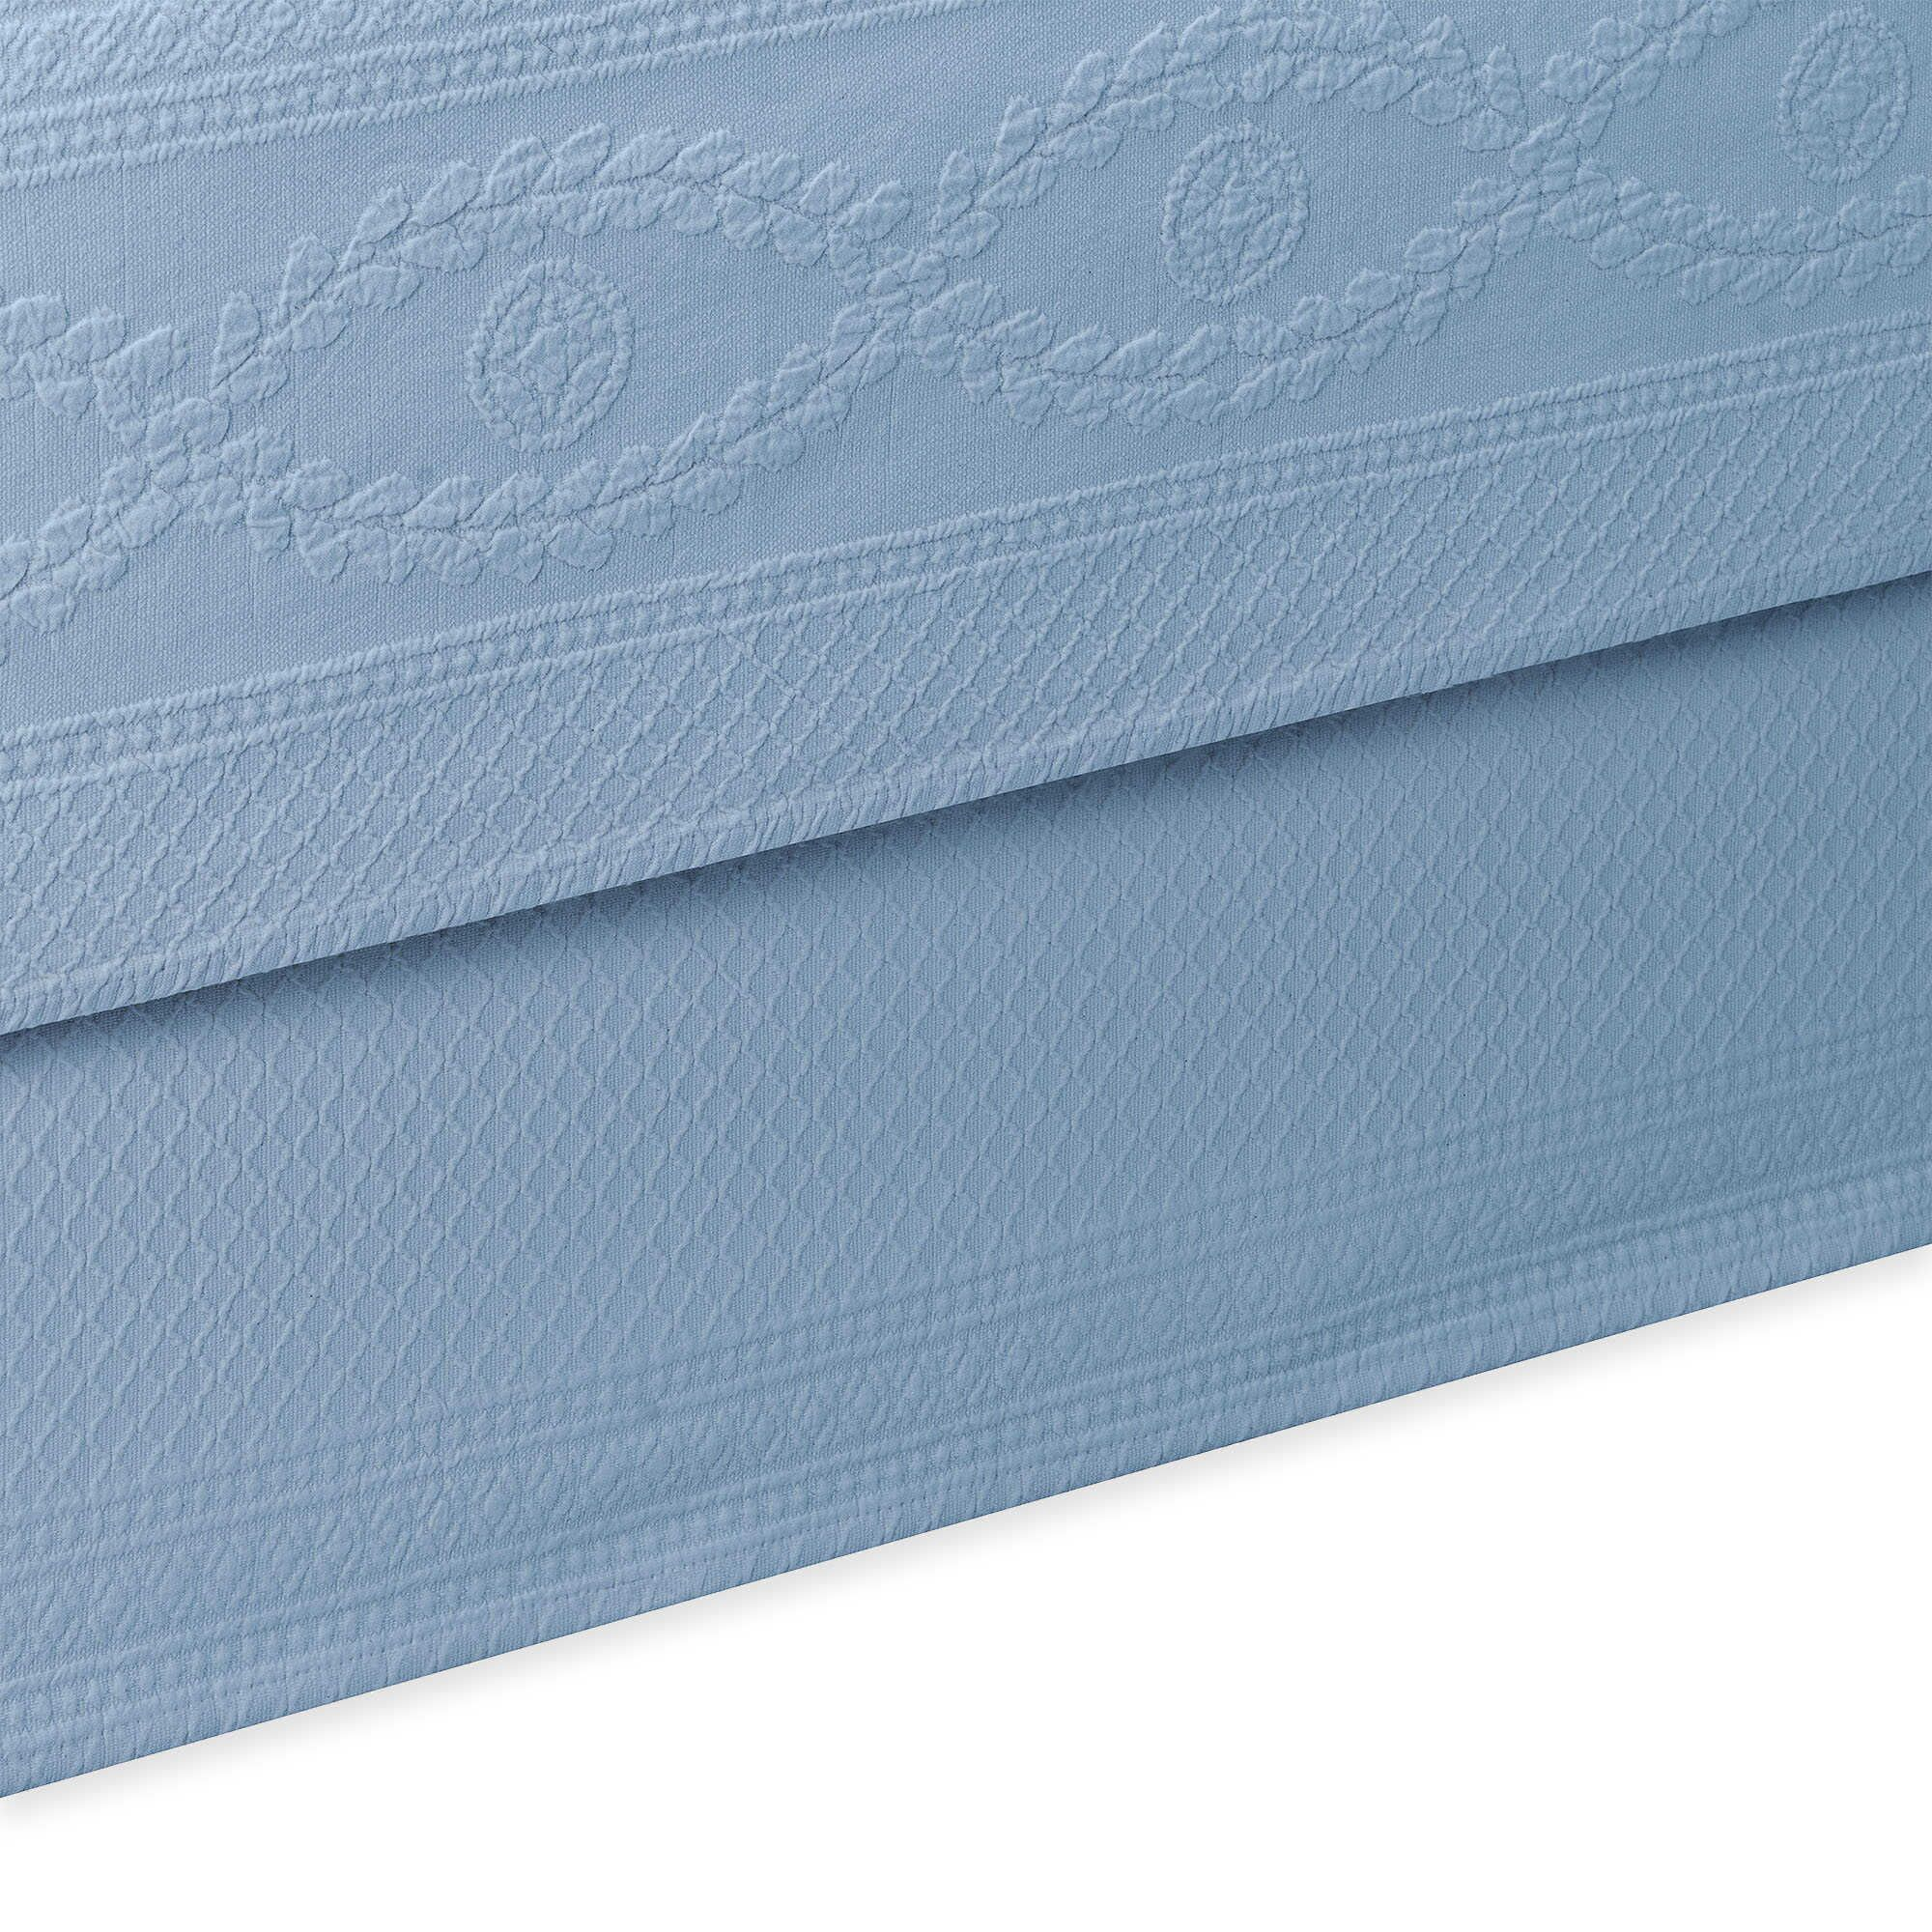 Williamsburg Abby Bed Skirt Color: Blue, Size: Queen